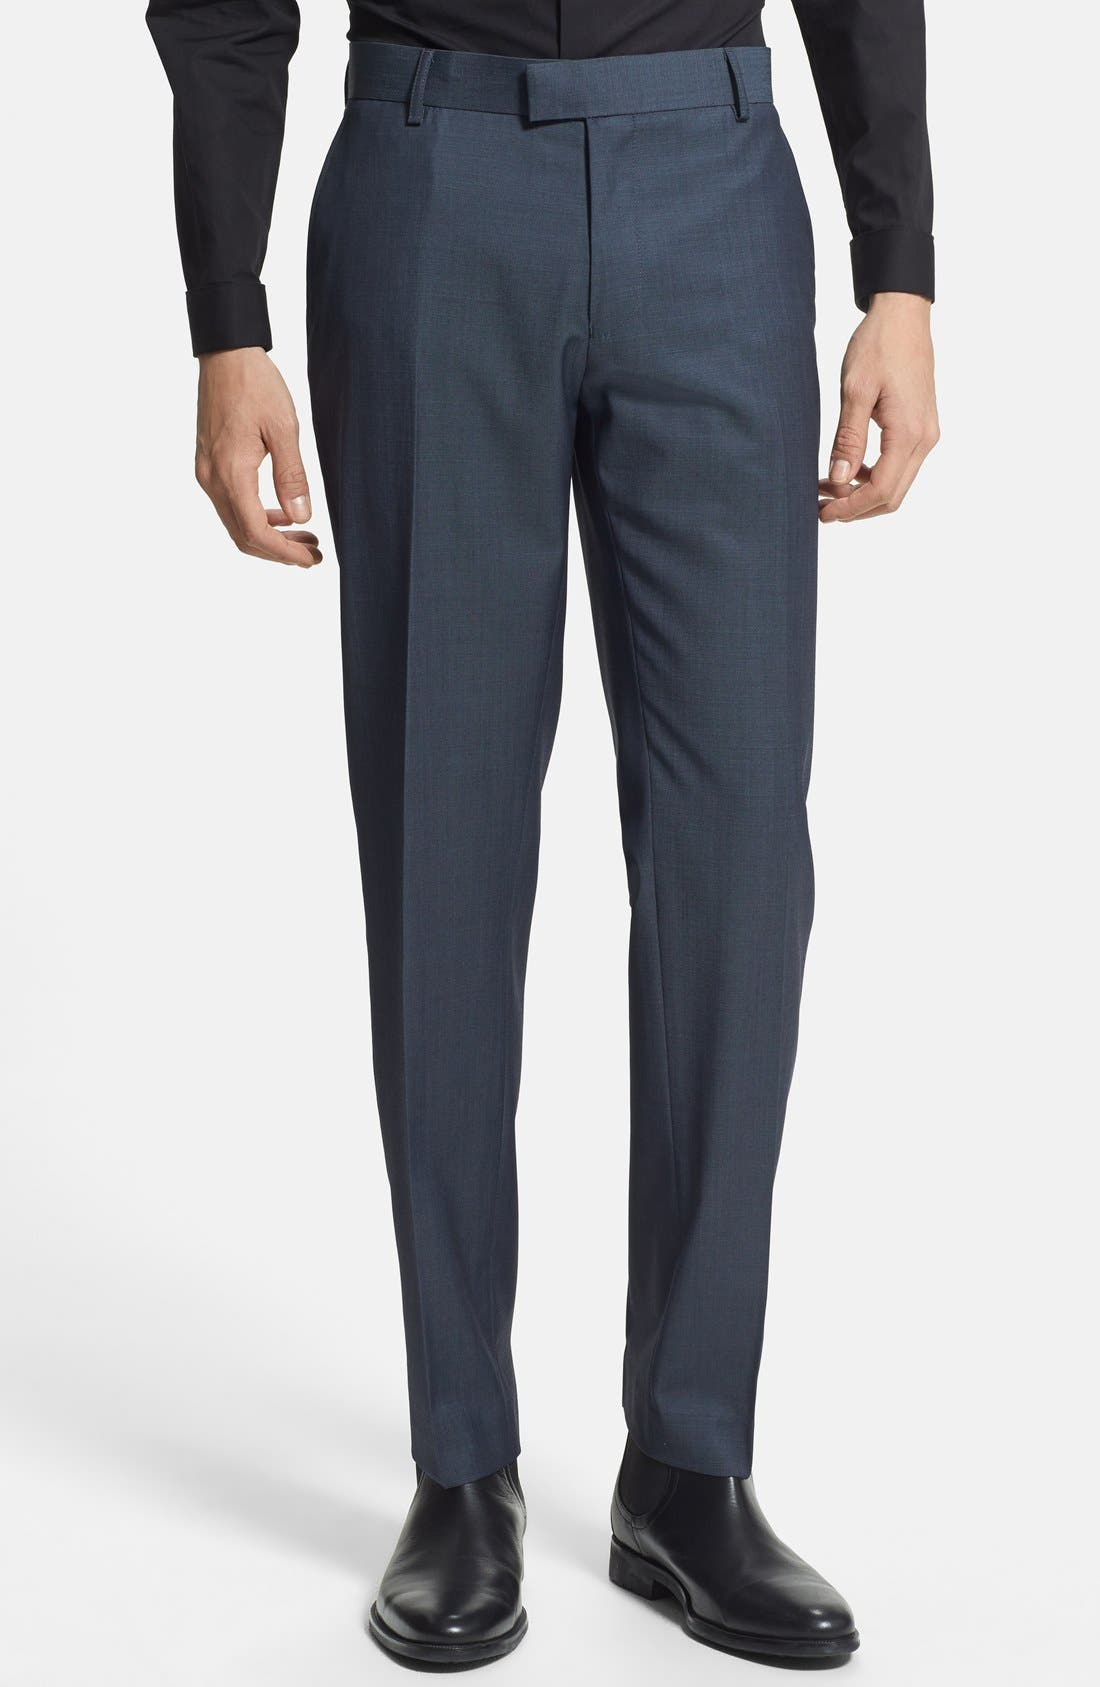 Main Image - Topman Skinny Fit Navy Suit Trousers